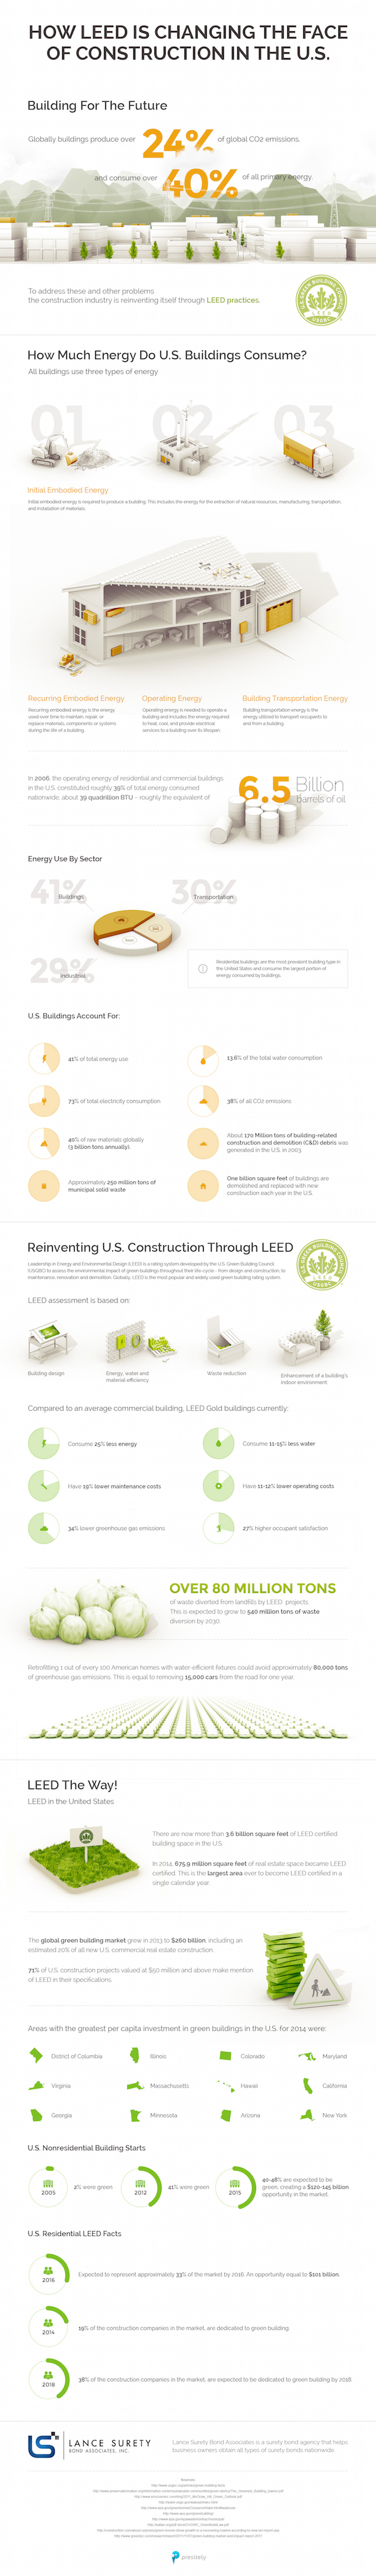 LEED construction helps create a more sustainable built environment